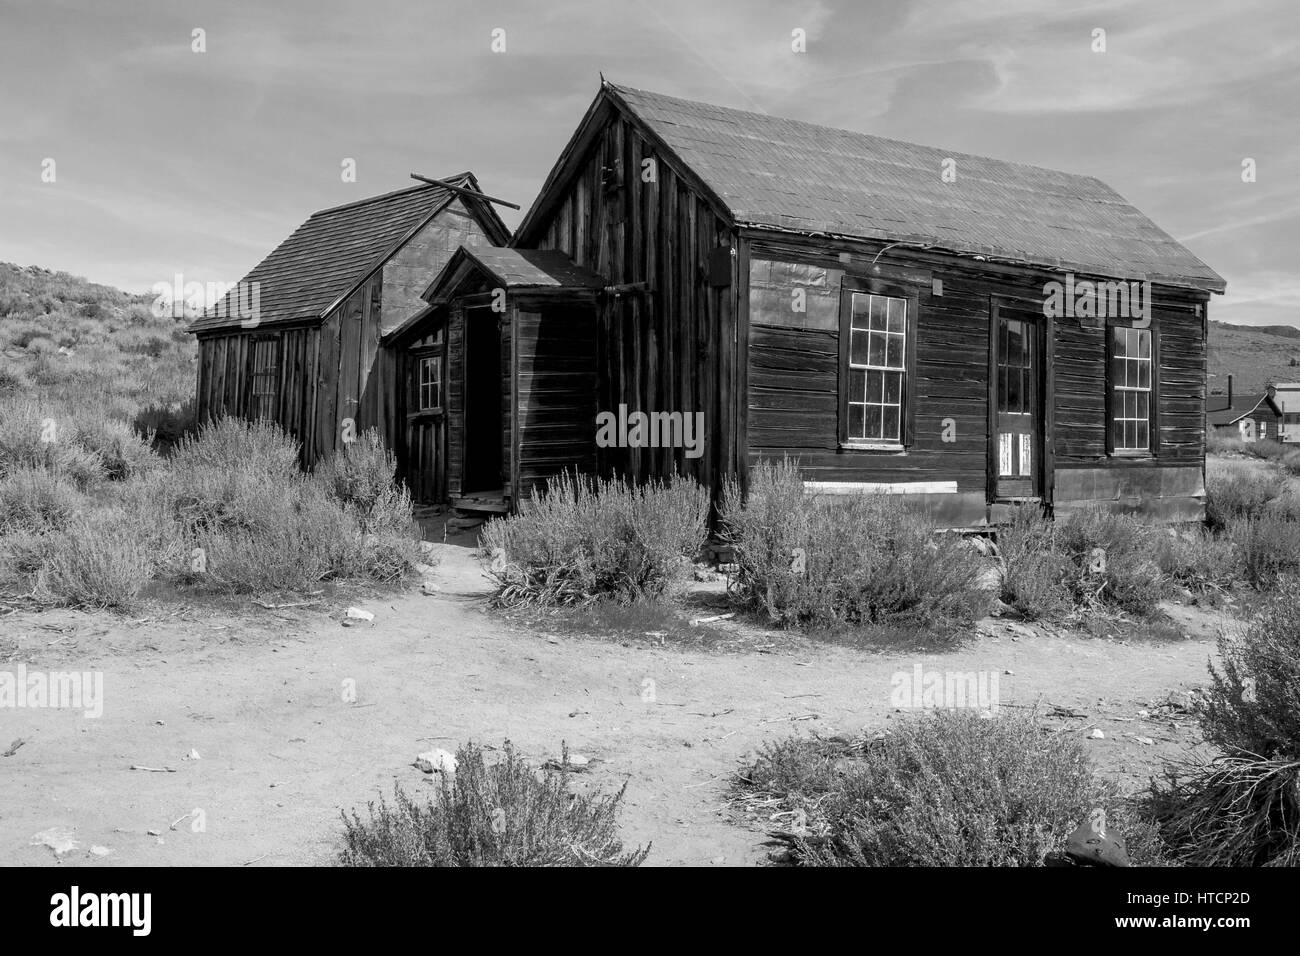 The Bodie State Park is the remains of Bodie, a silver and copper mining town in the eastern California desert. Stock Photo